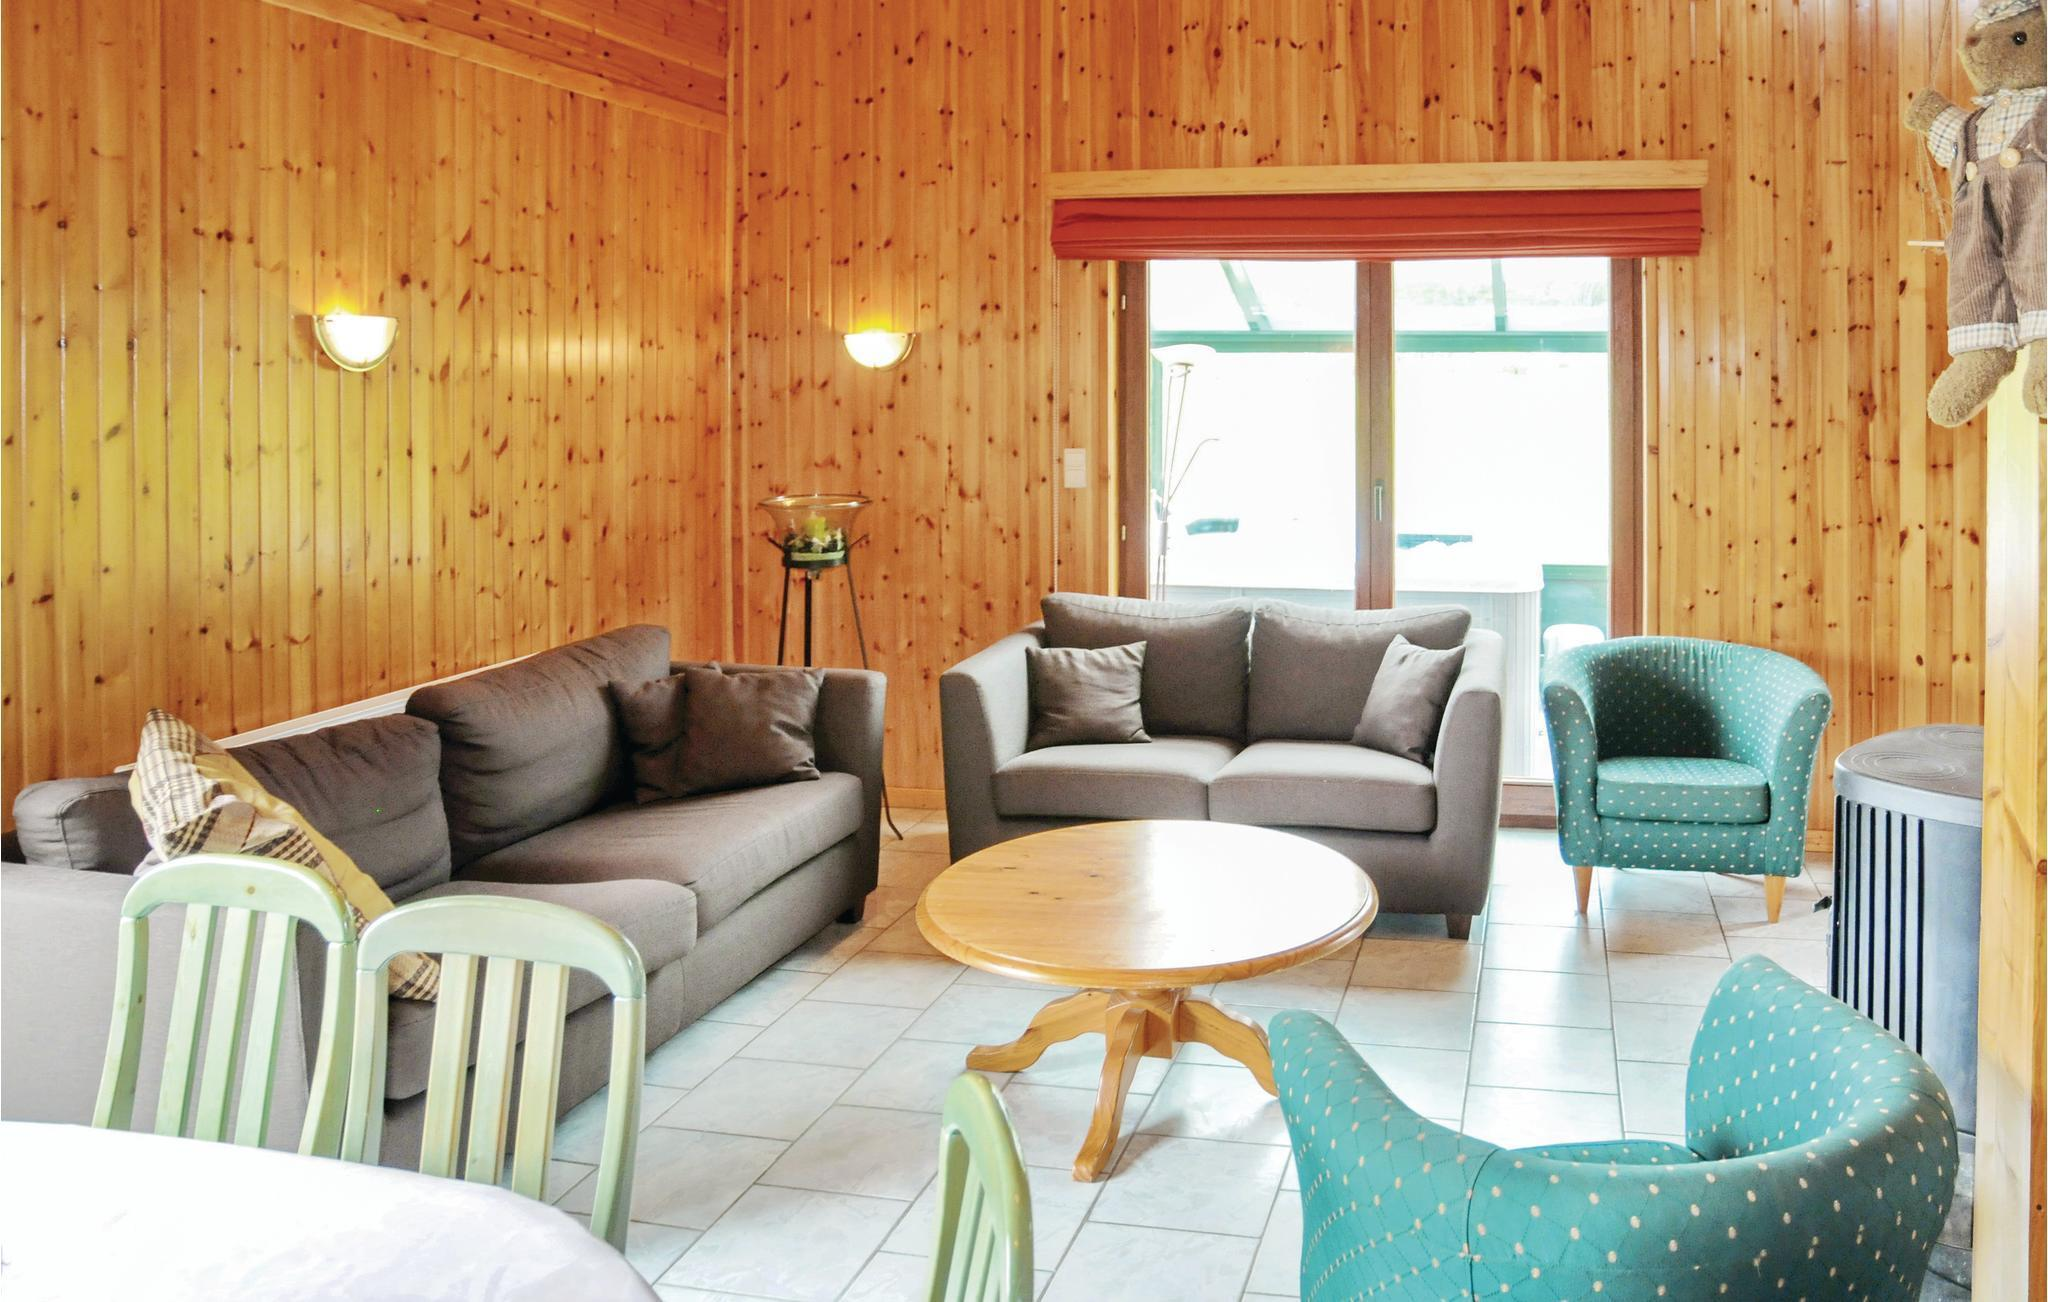 Schlafzimmer Set Bellevue Holiday Home/apartment - 8 Persons - Domaine De Bellevue - 6941 - Durbuy - 132-blx177 - Feline Holidays